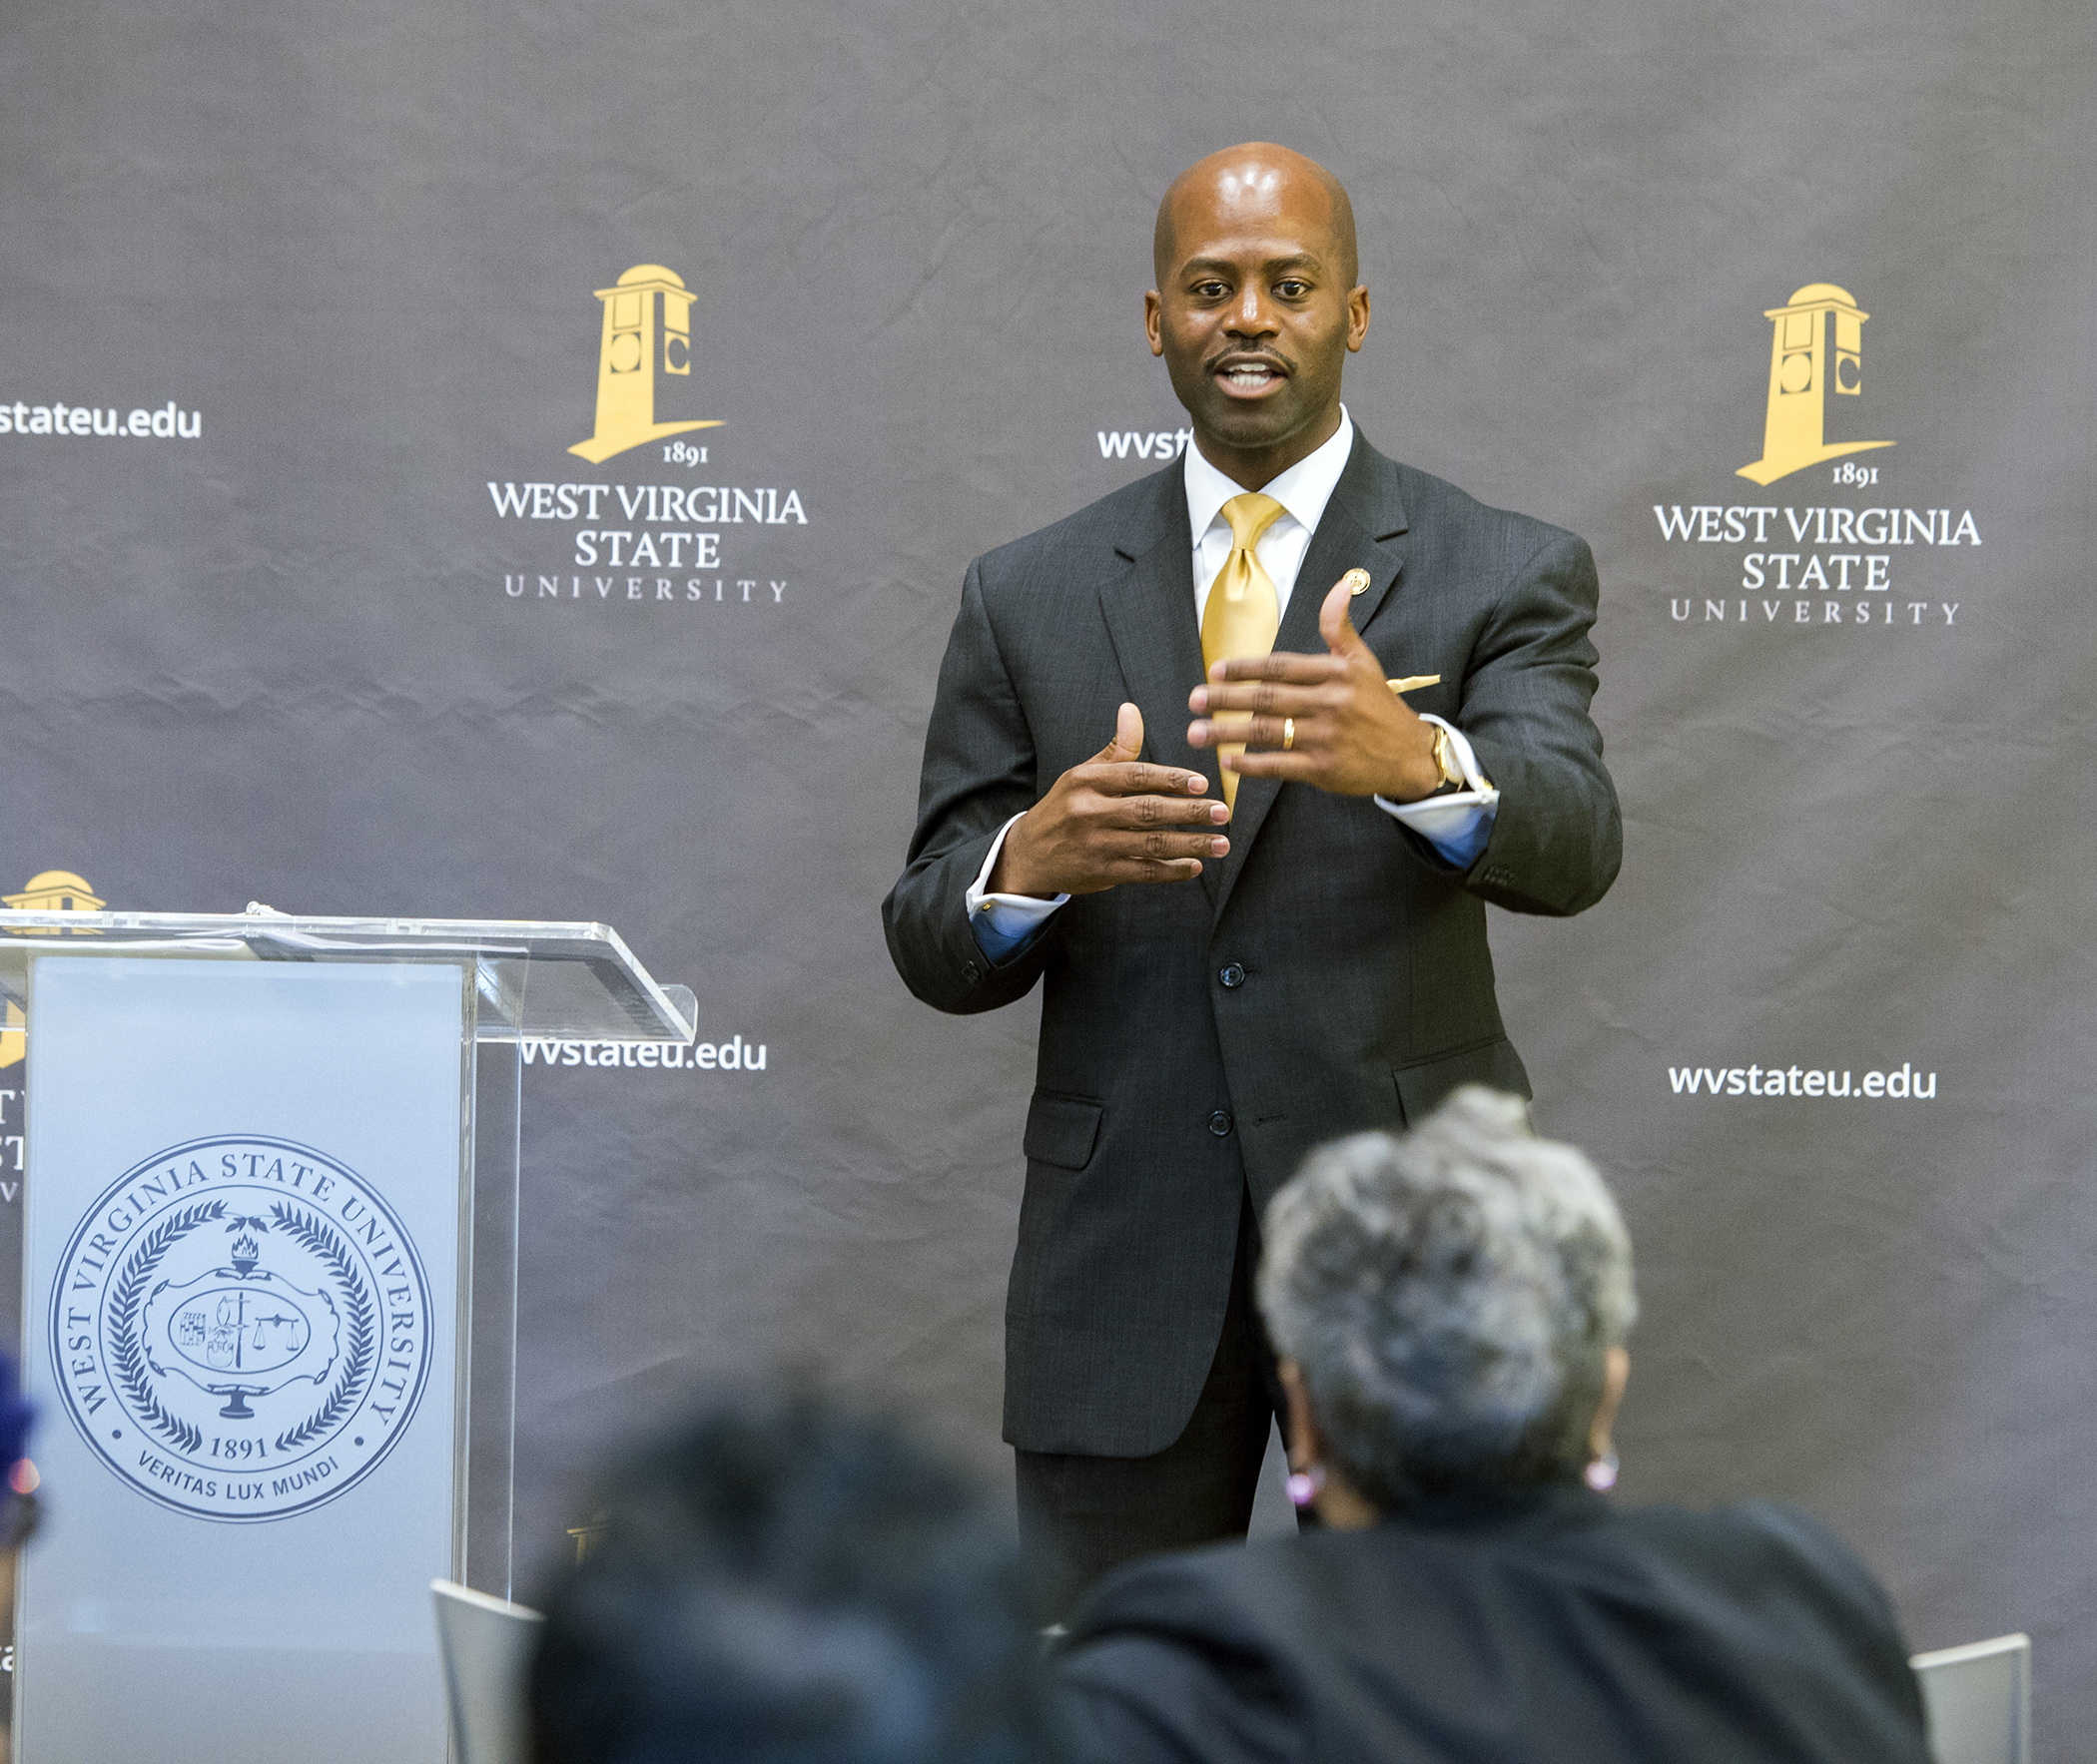 President Jenkins speaks about the University